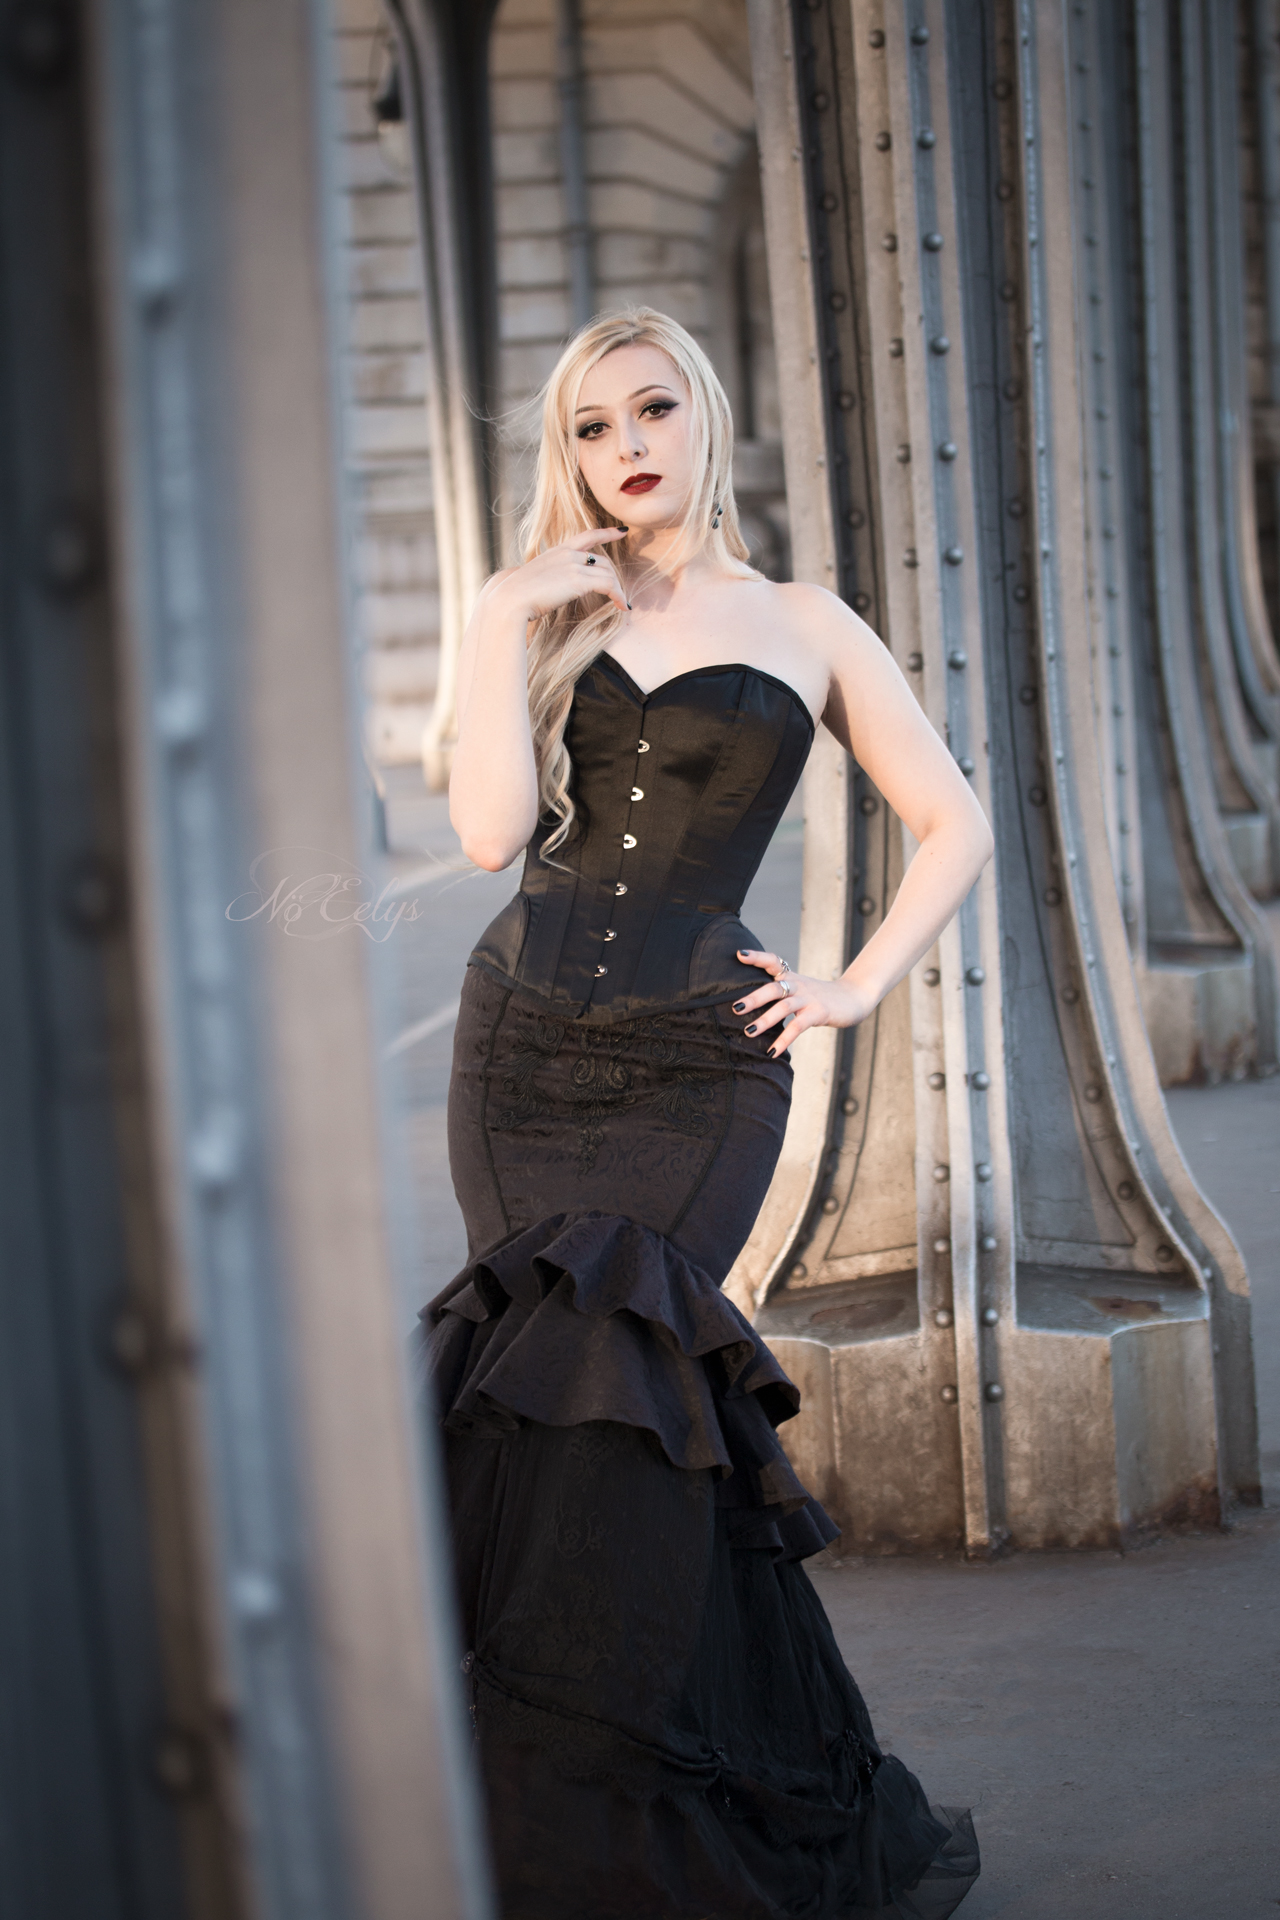 Shooting Gothique romantique moderne pont Bir Hakeim Paris, modele alternative No Eelys